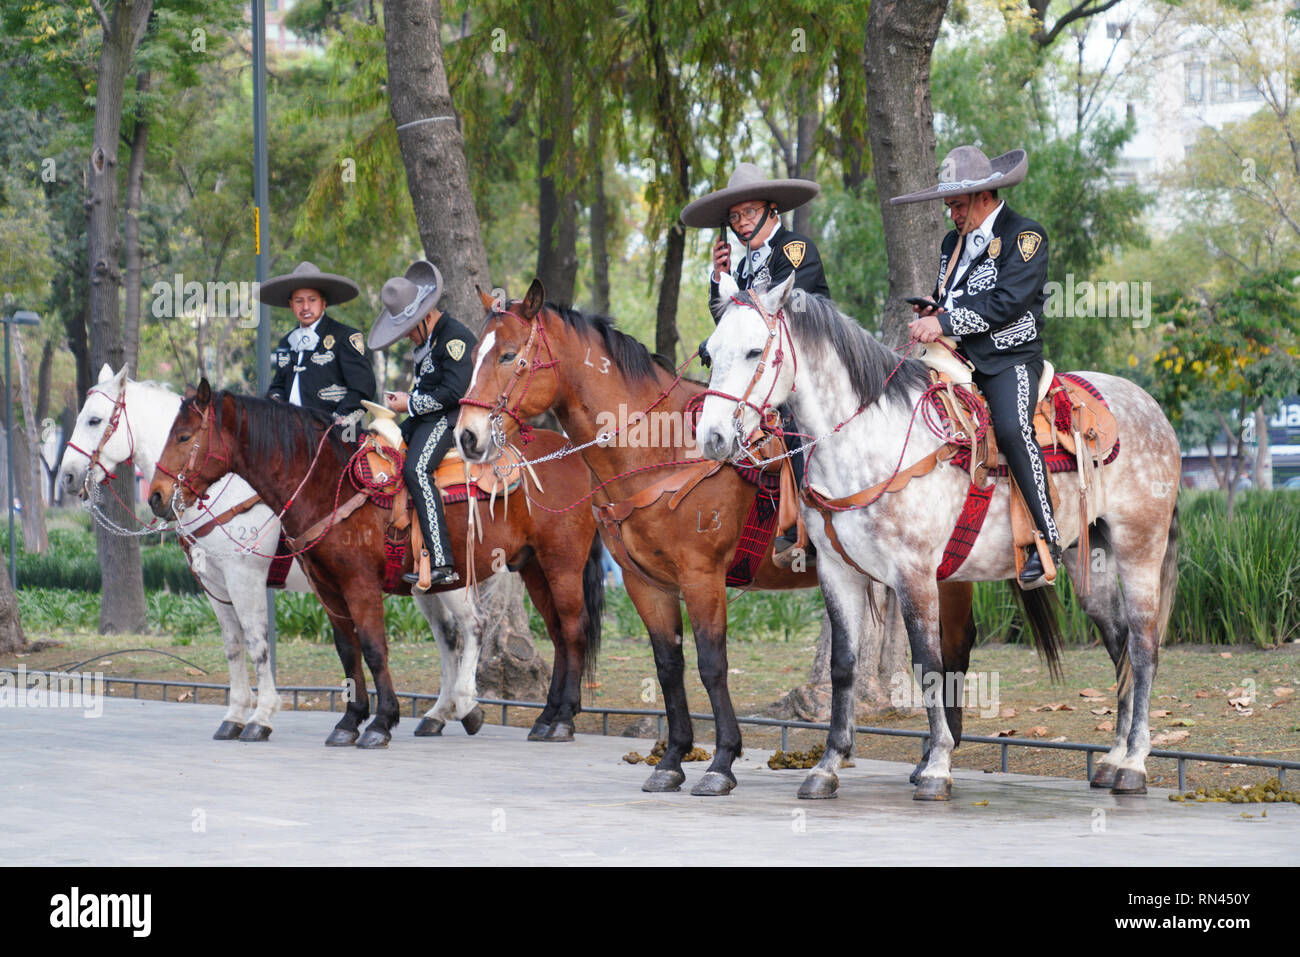 Mounted police in Alameda Central Park in Mexico City - Stock Image